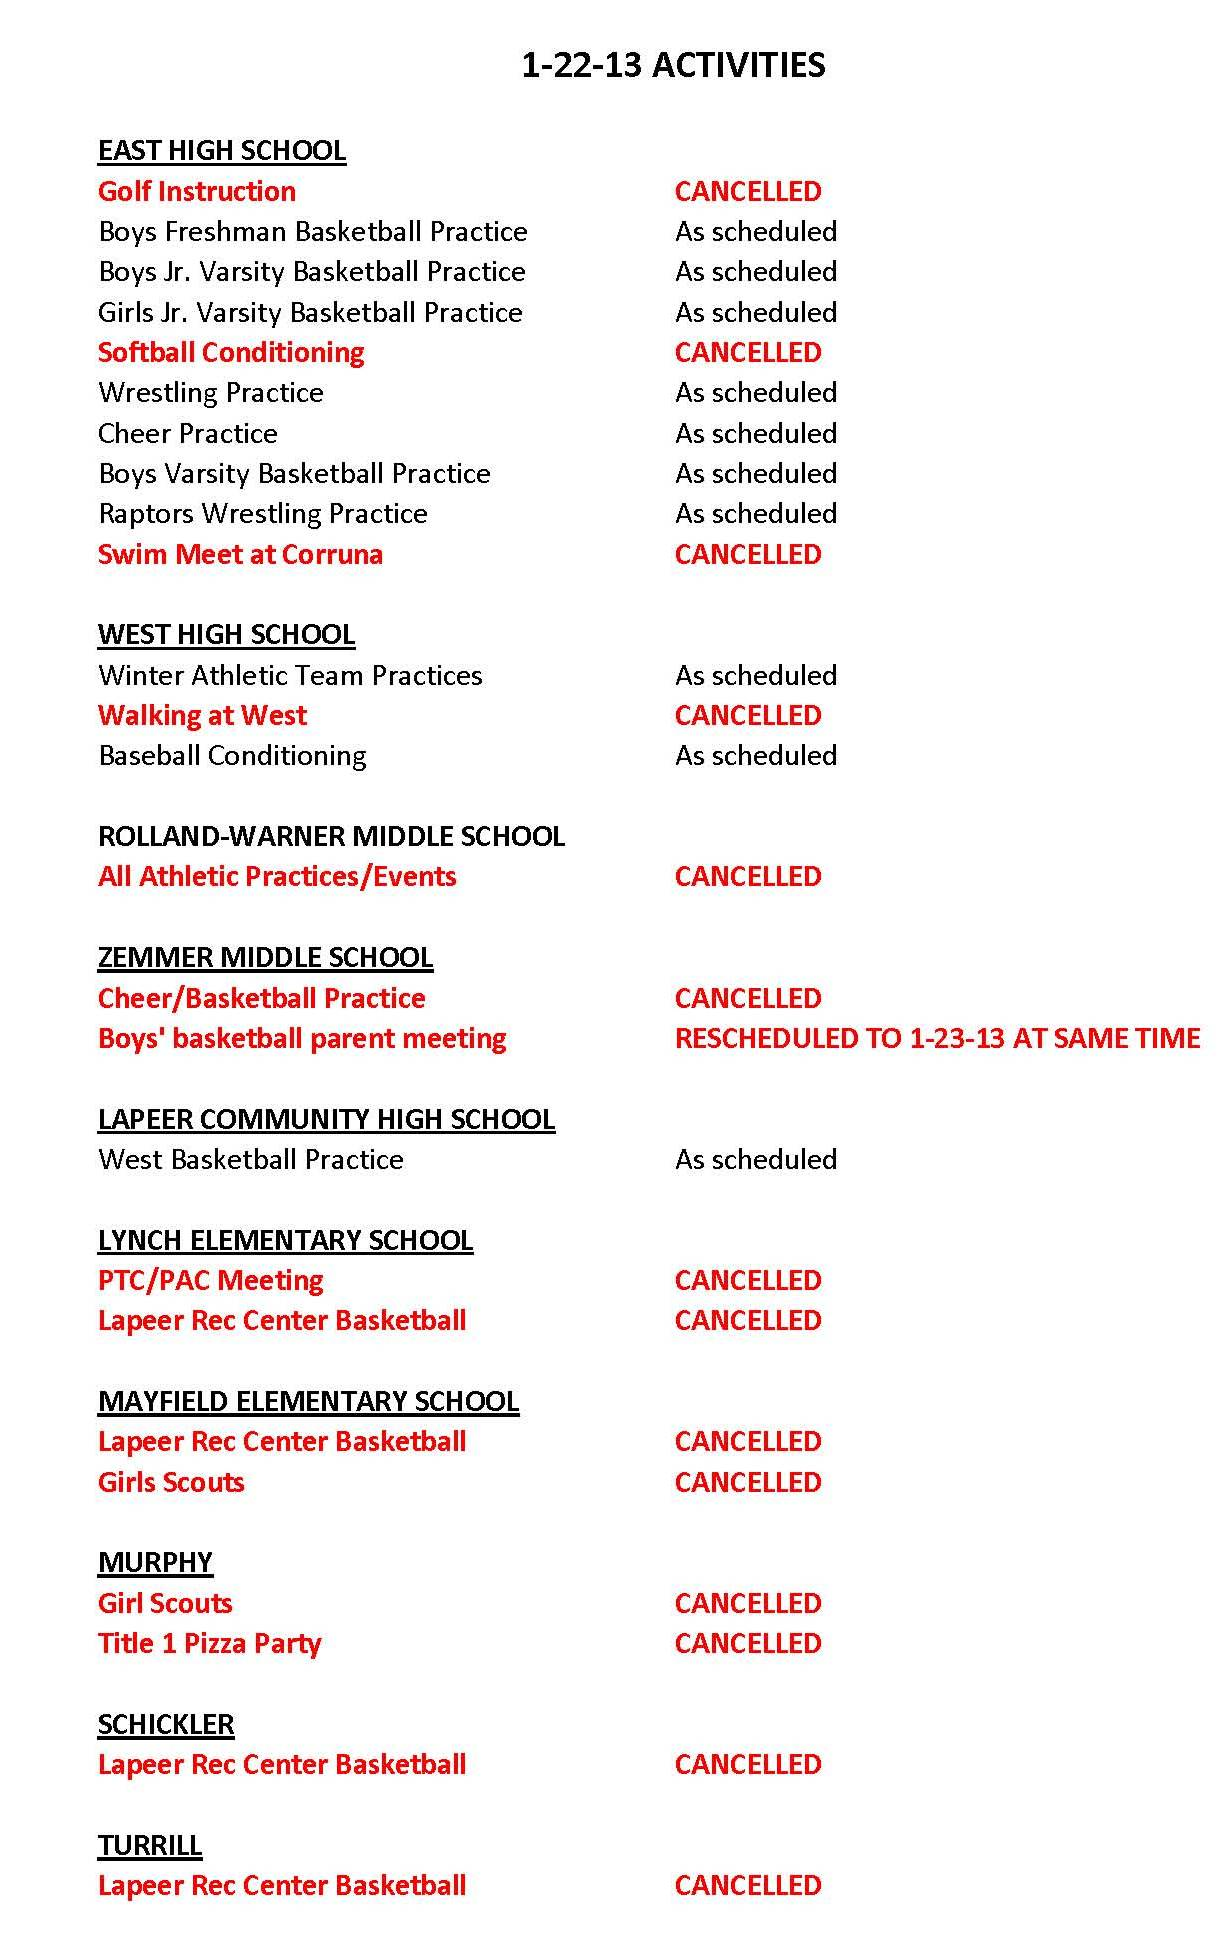 1-22-13 Cancellations2